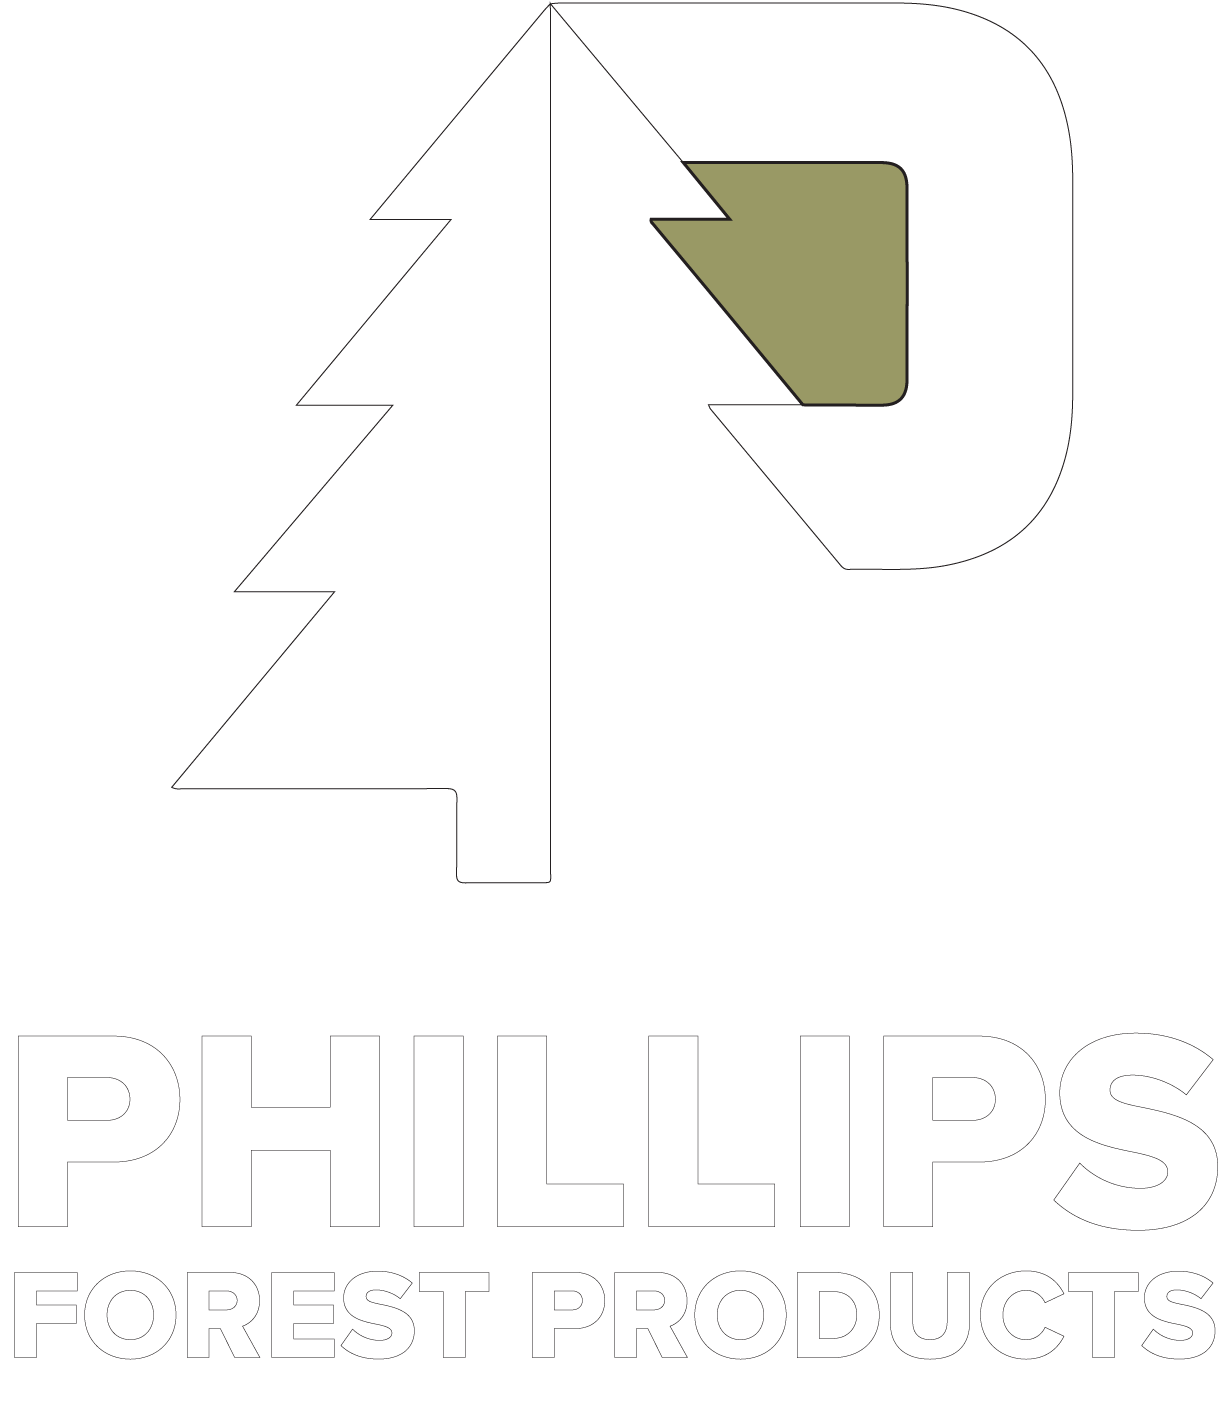 The Historic Phillip Forest Products